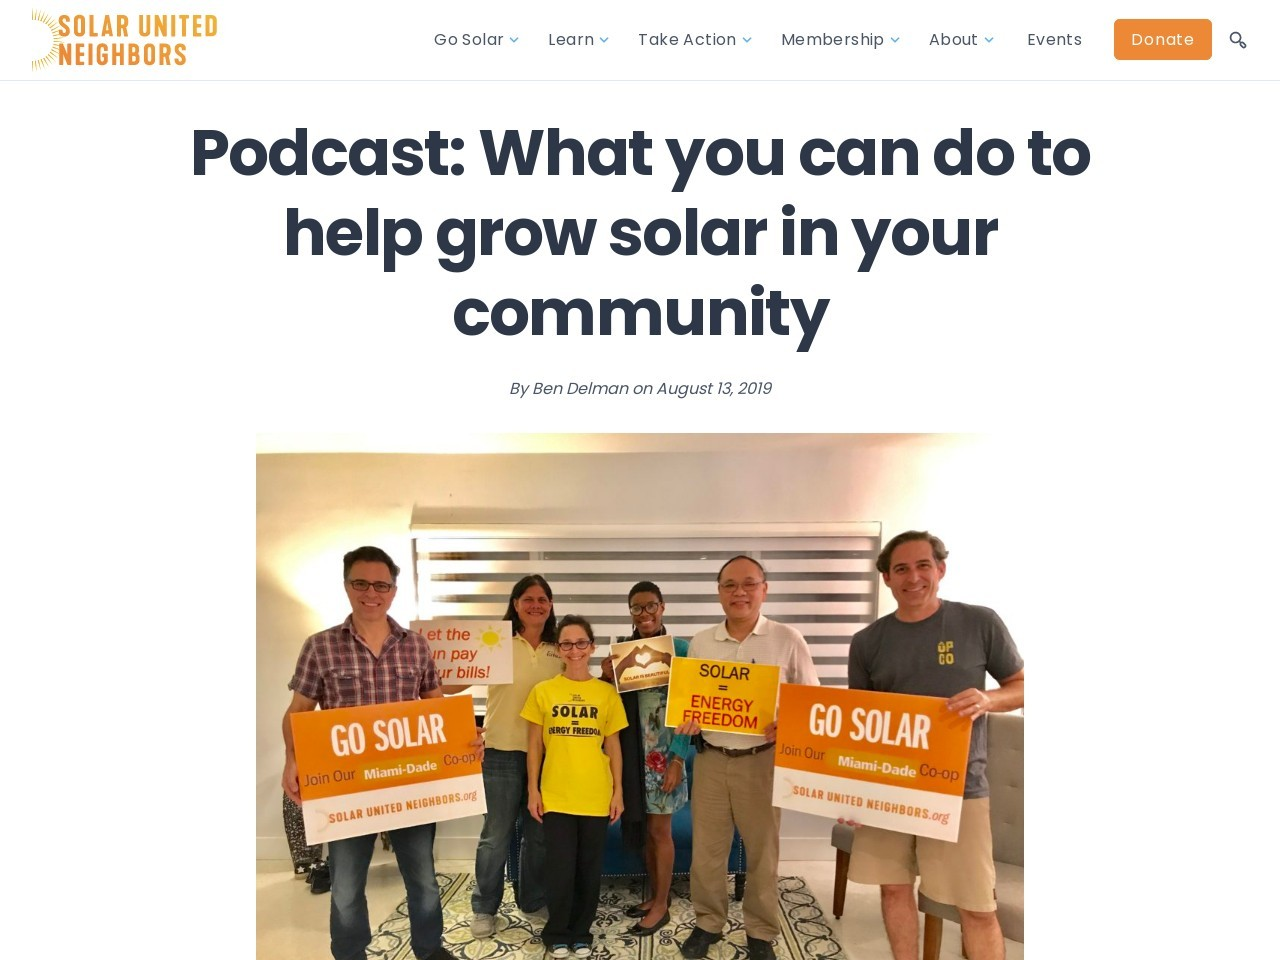 Podcast: What you can do to help grow solar in your community